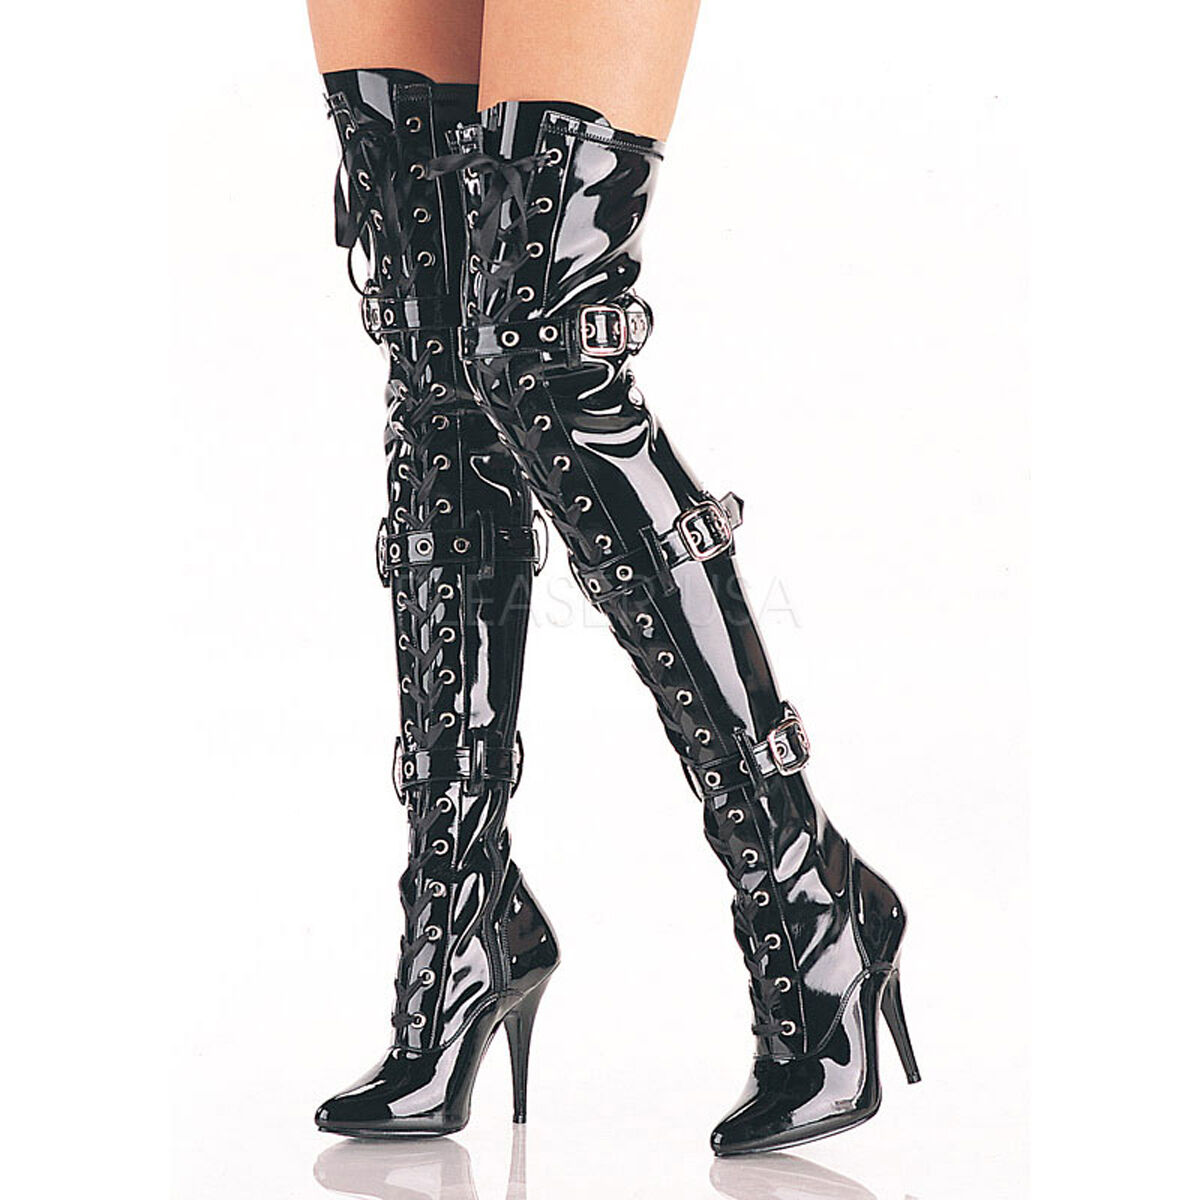 Seduce 3028 Buckle Lace Up Thigh High Single Sole Boots 5  Stiletto Heel 6-14